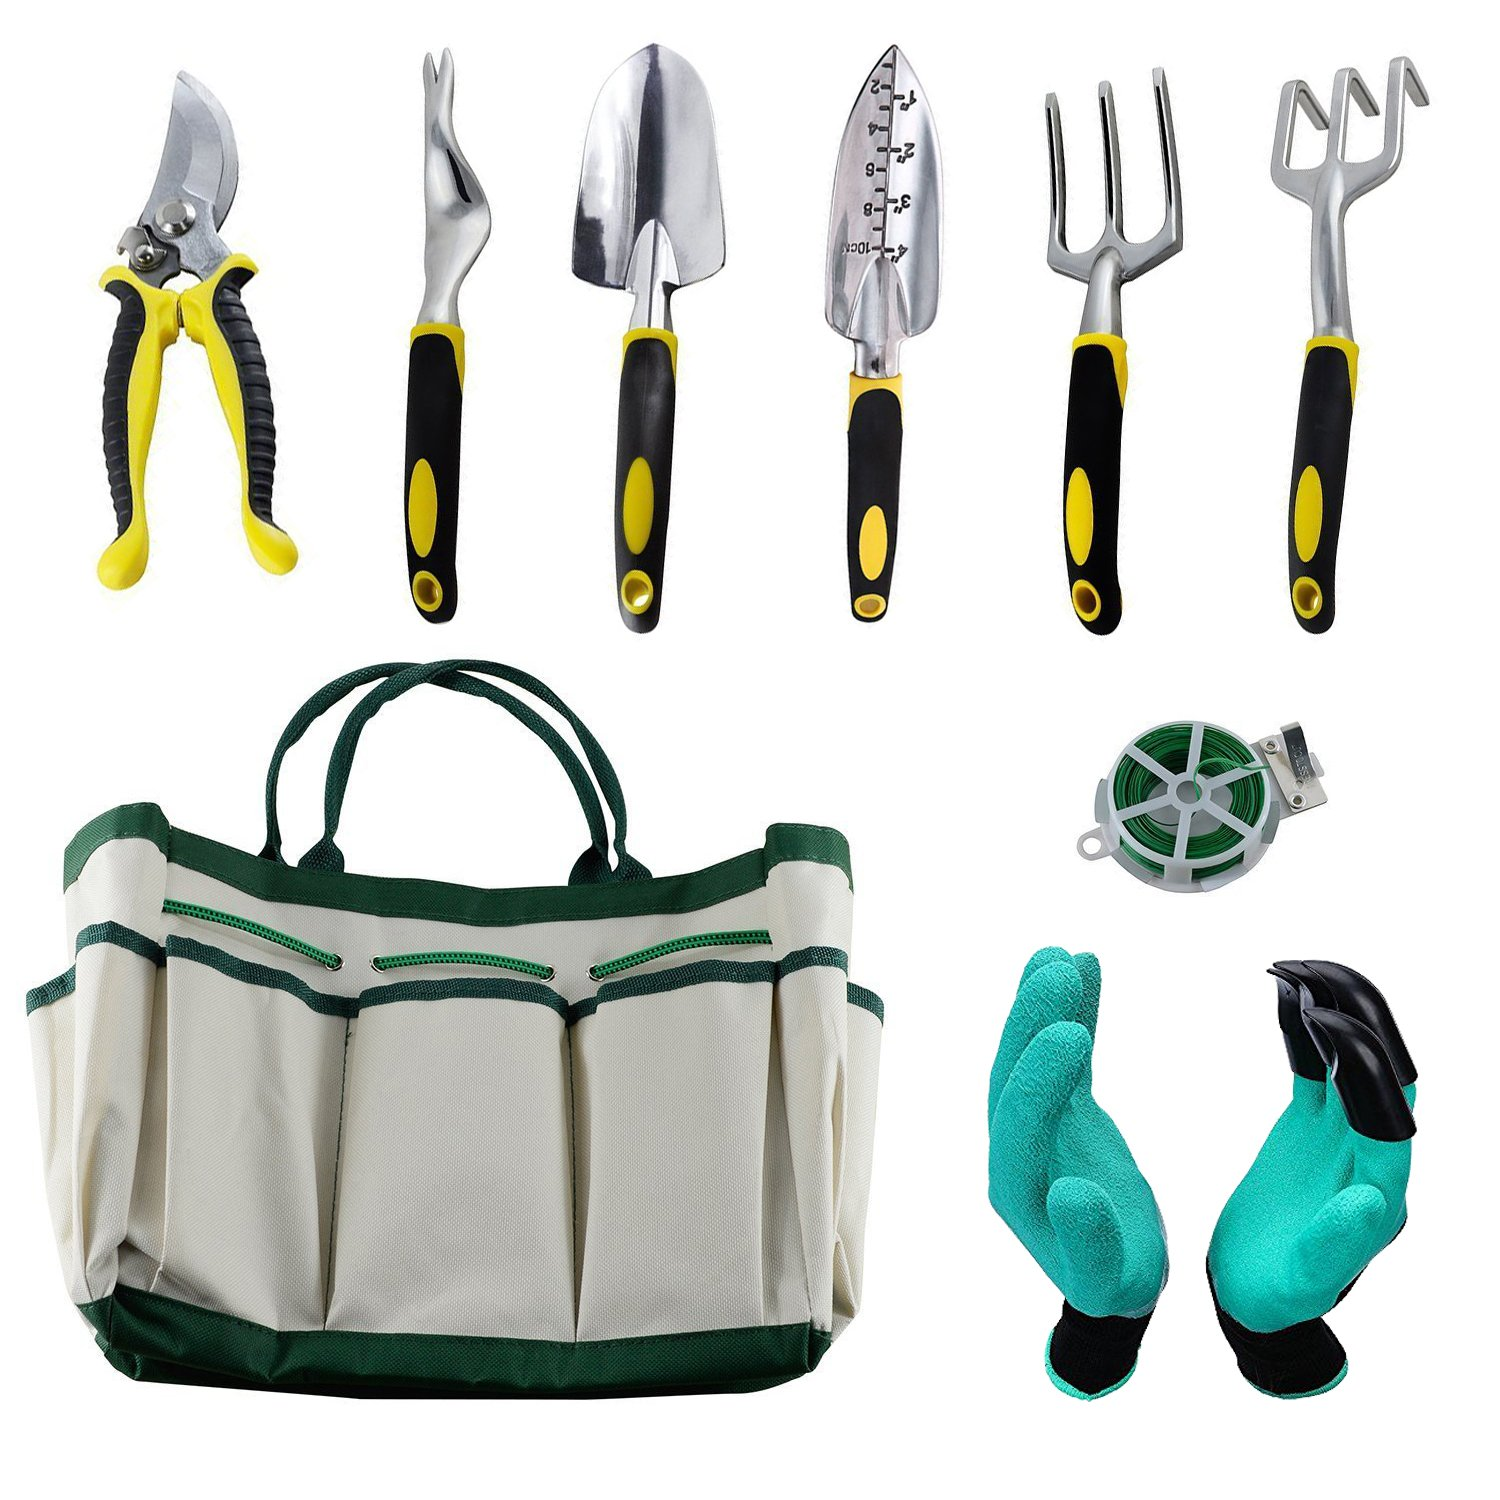 HmiL-U Garden Tool Sets 9 piece Gardening tool with Plant Tie- Garden Tote and Garden Gloves and more Christmas gifts for your parents.